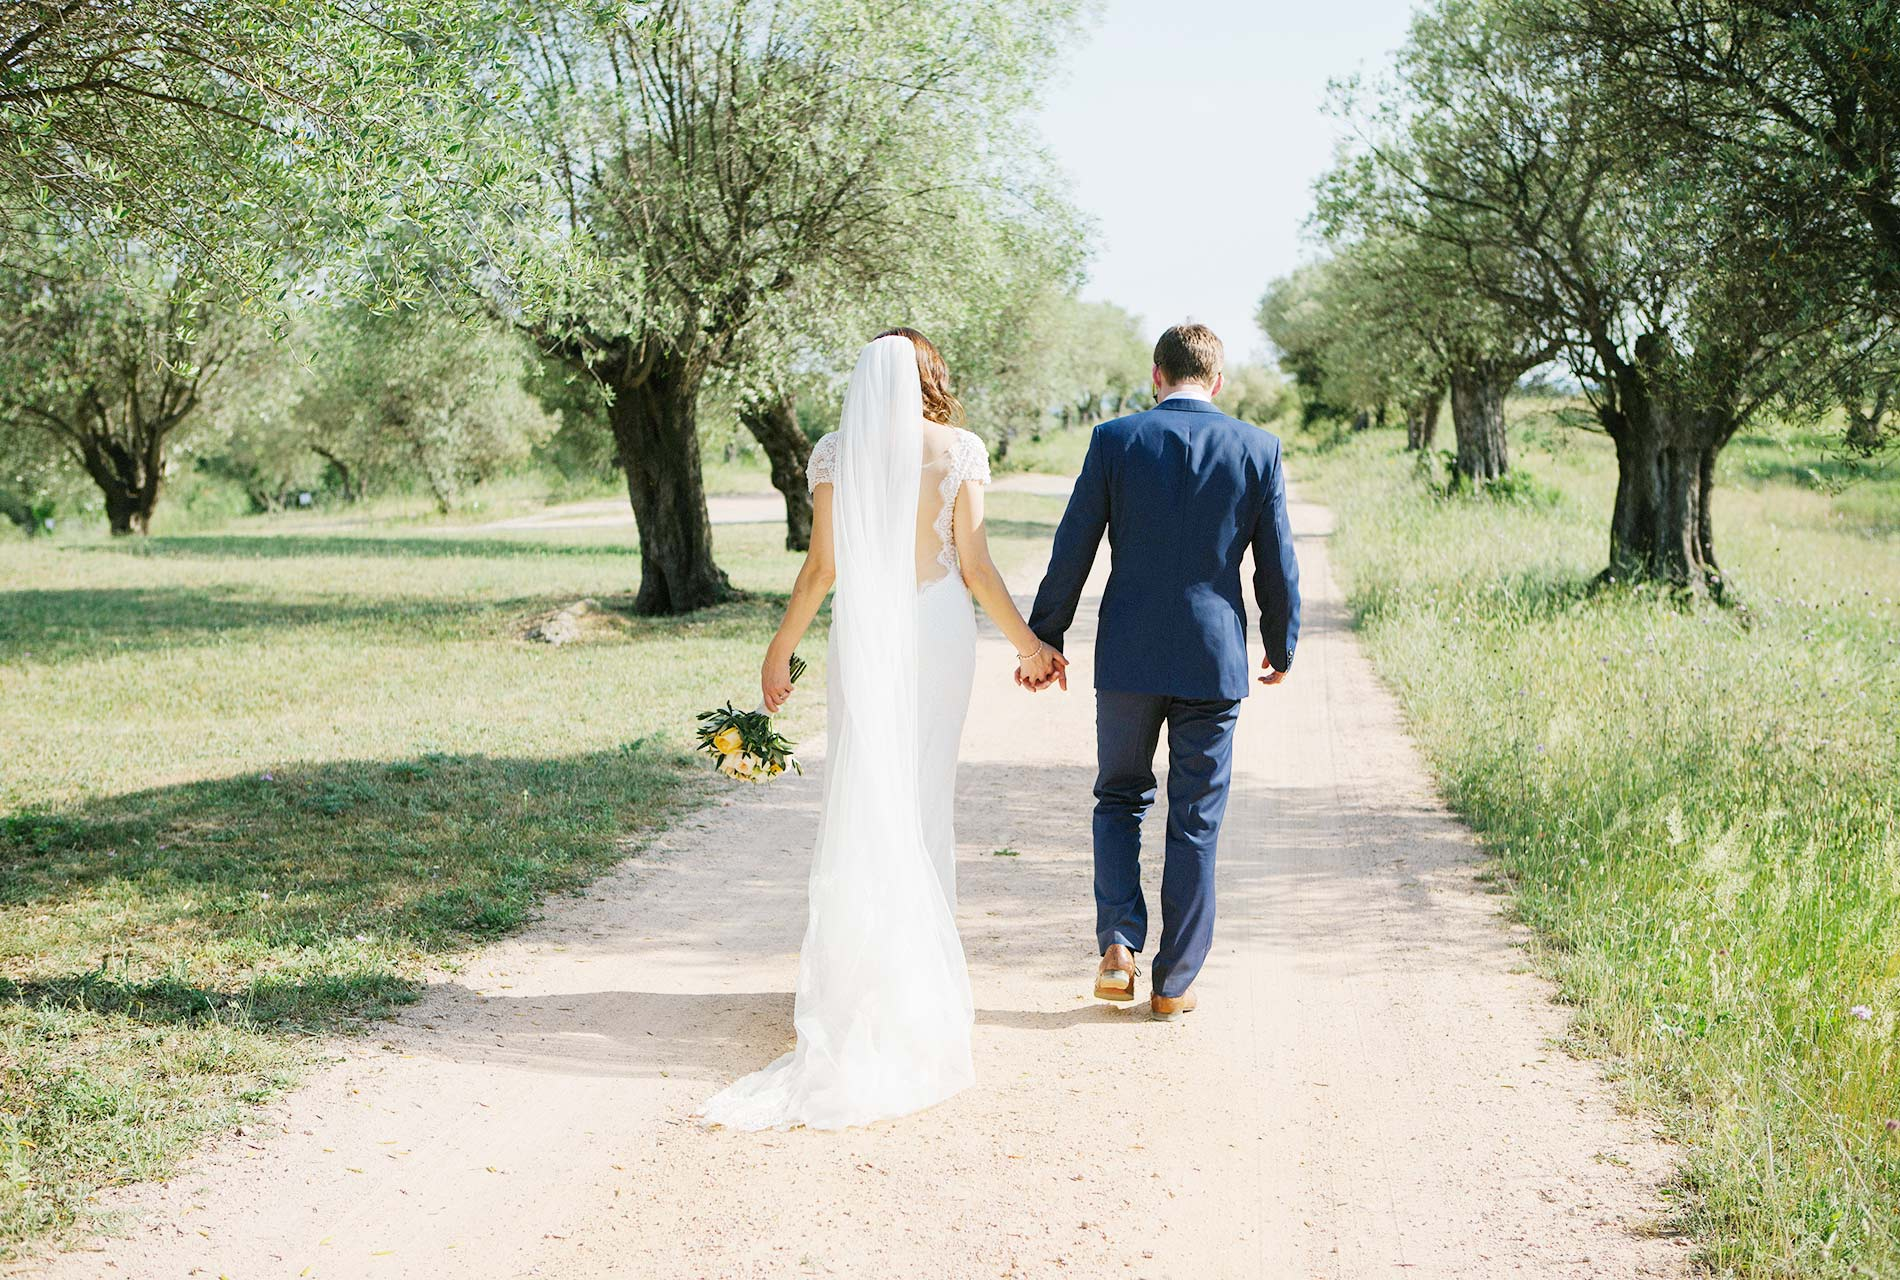 Castell de Emporda wedding photogaphy. Destination wedding photographer Spain.